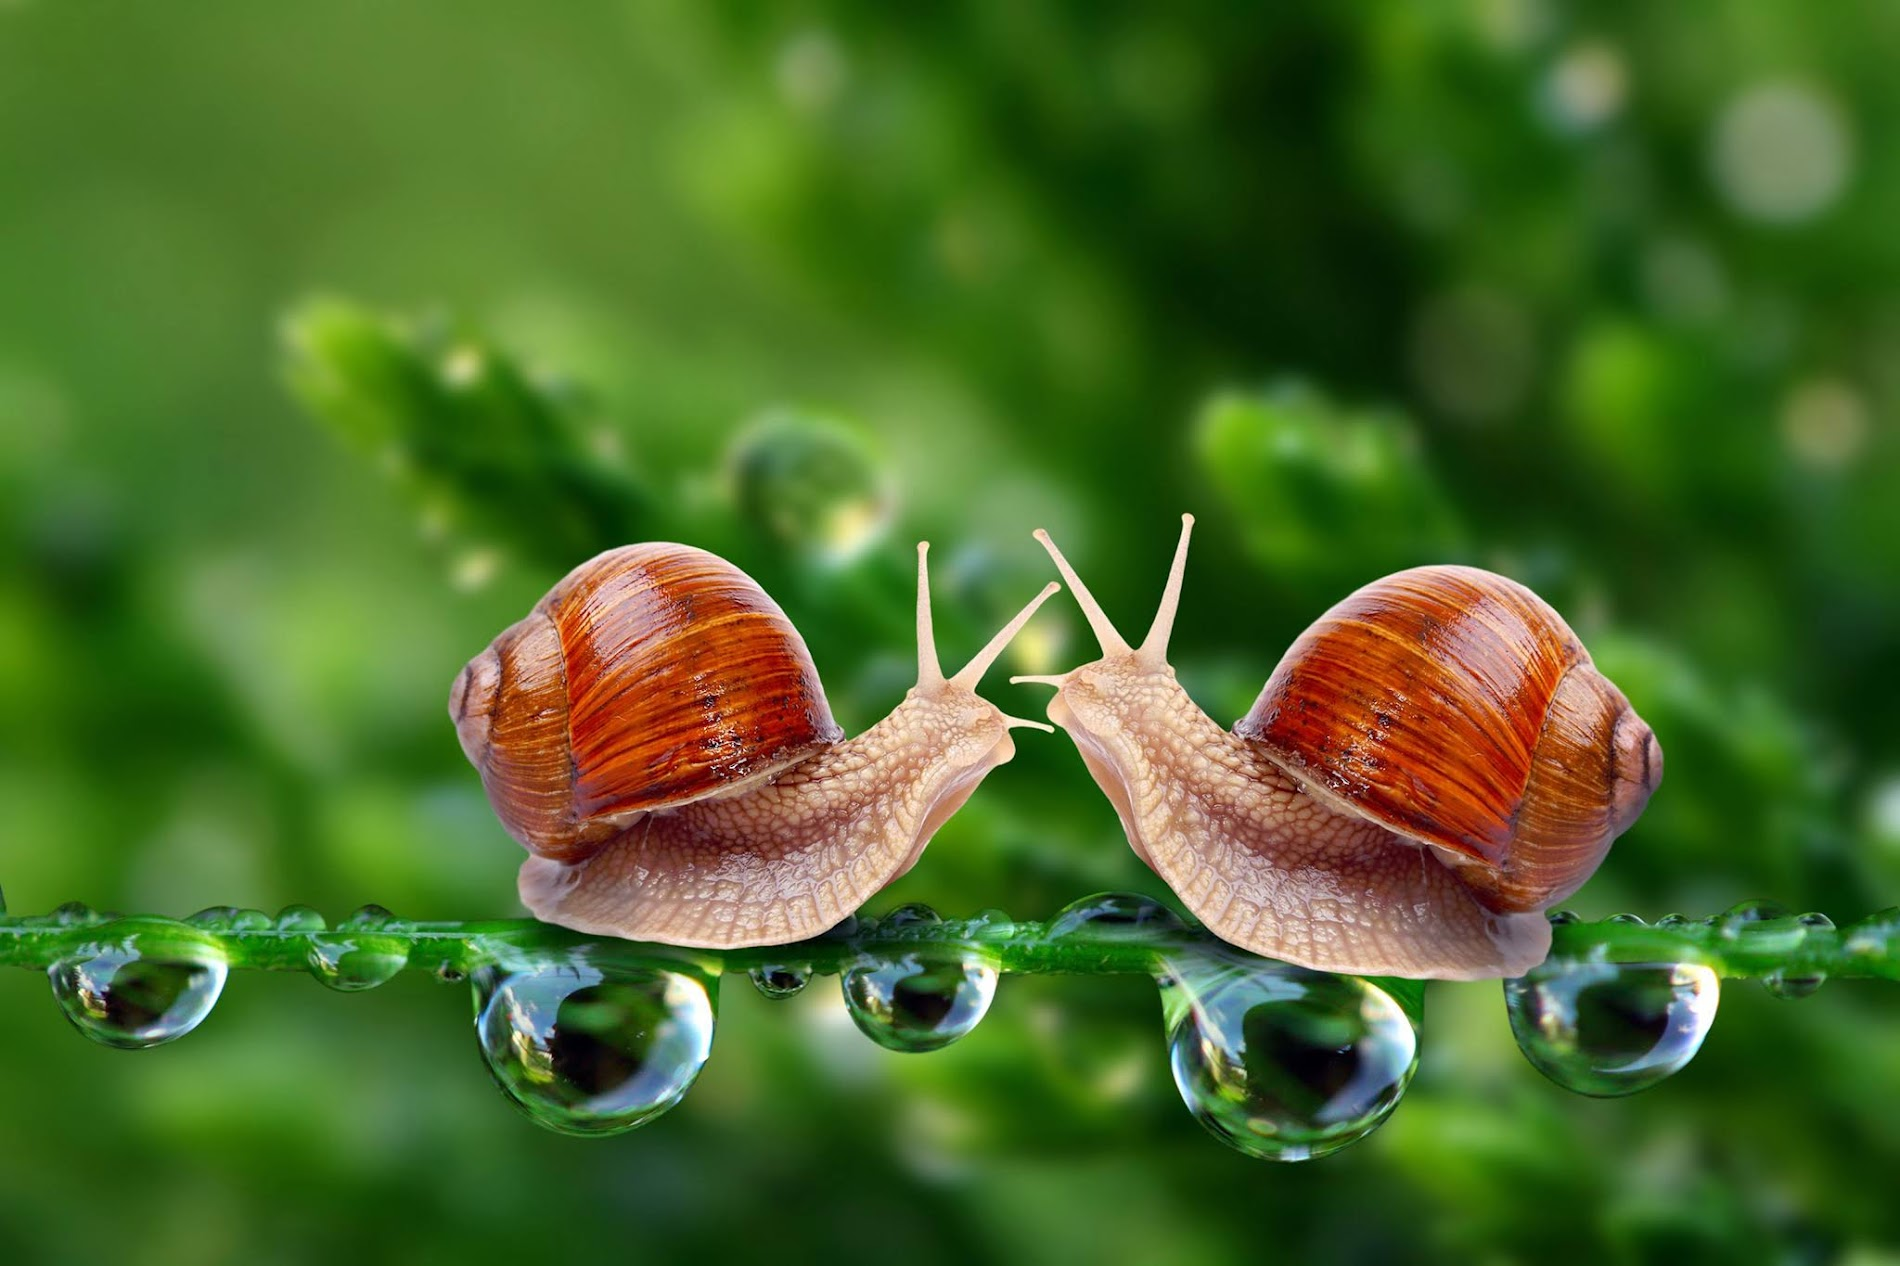 Snails HD Wallpaper